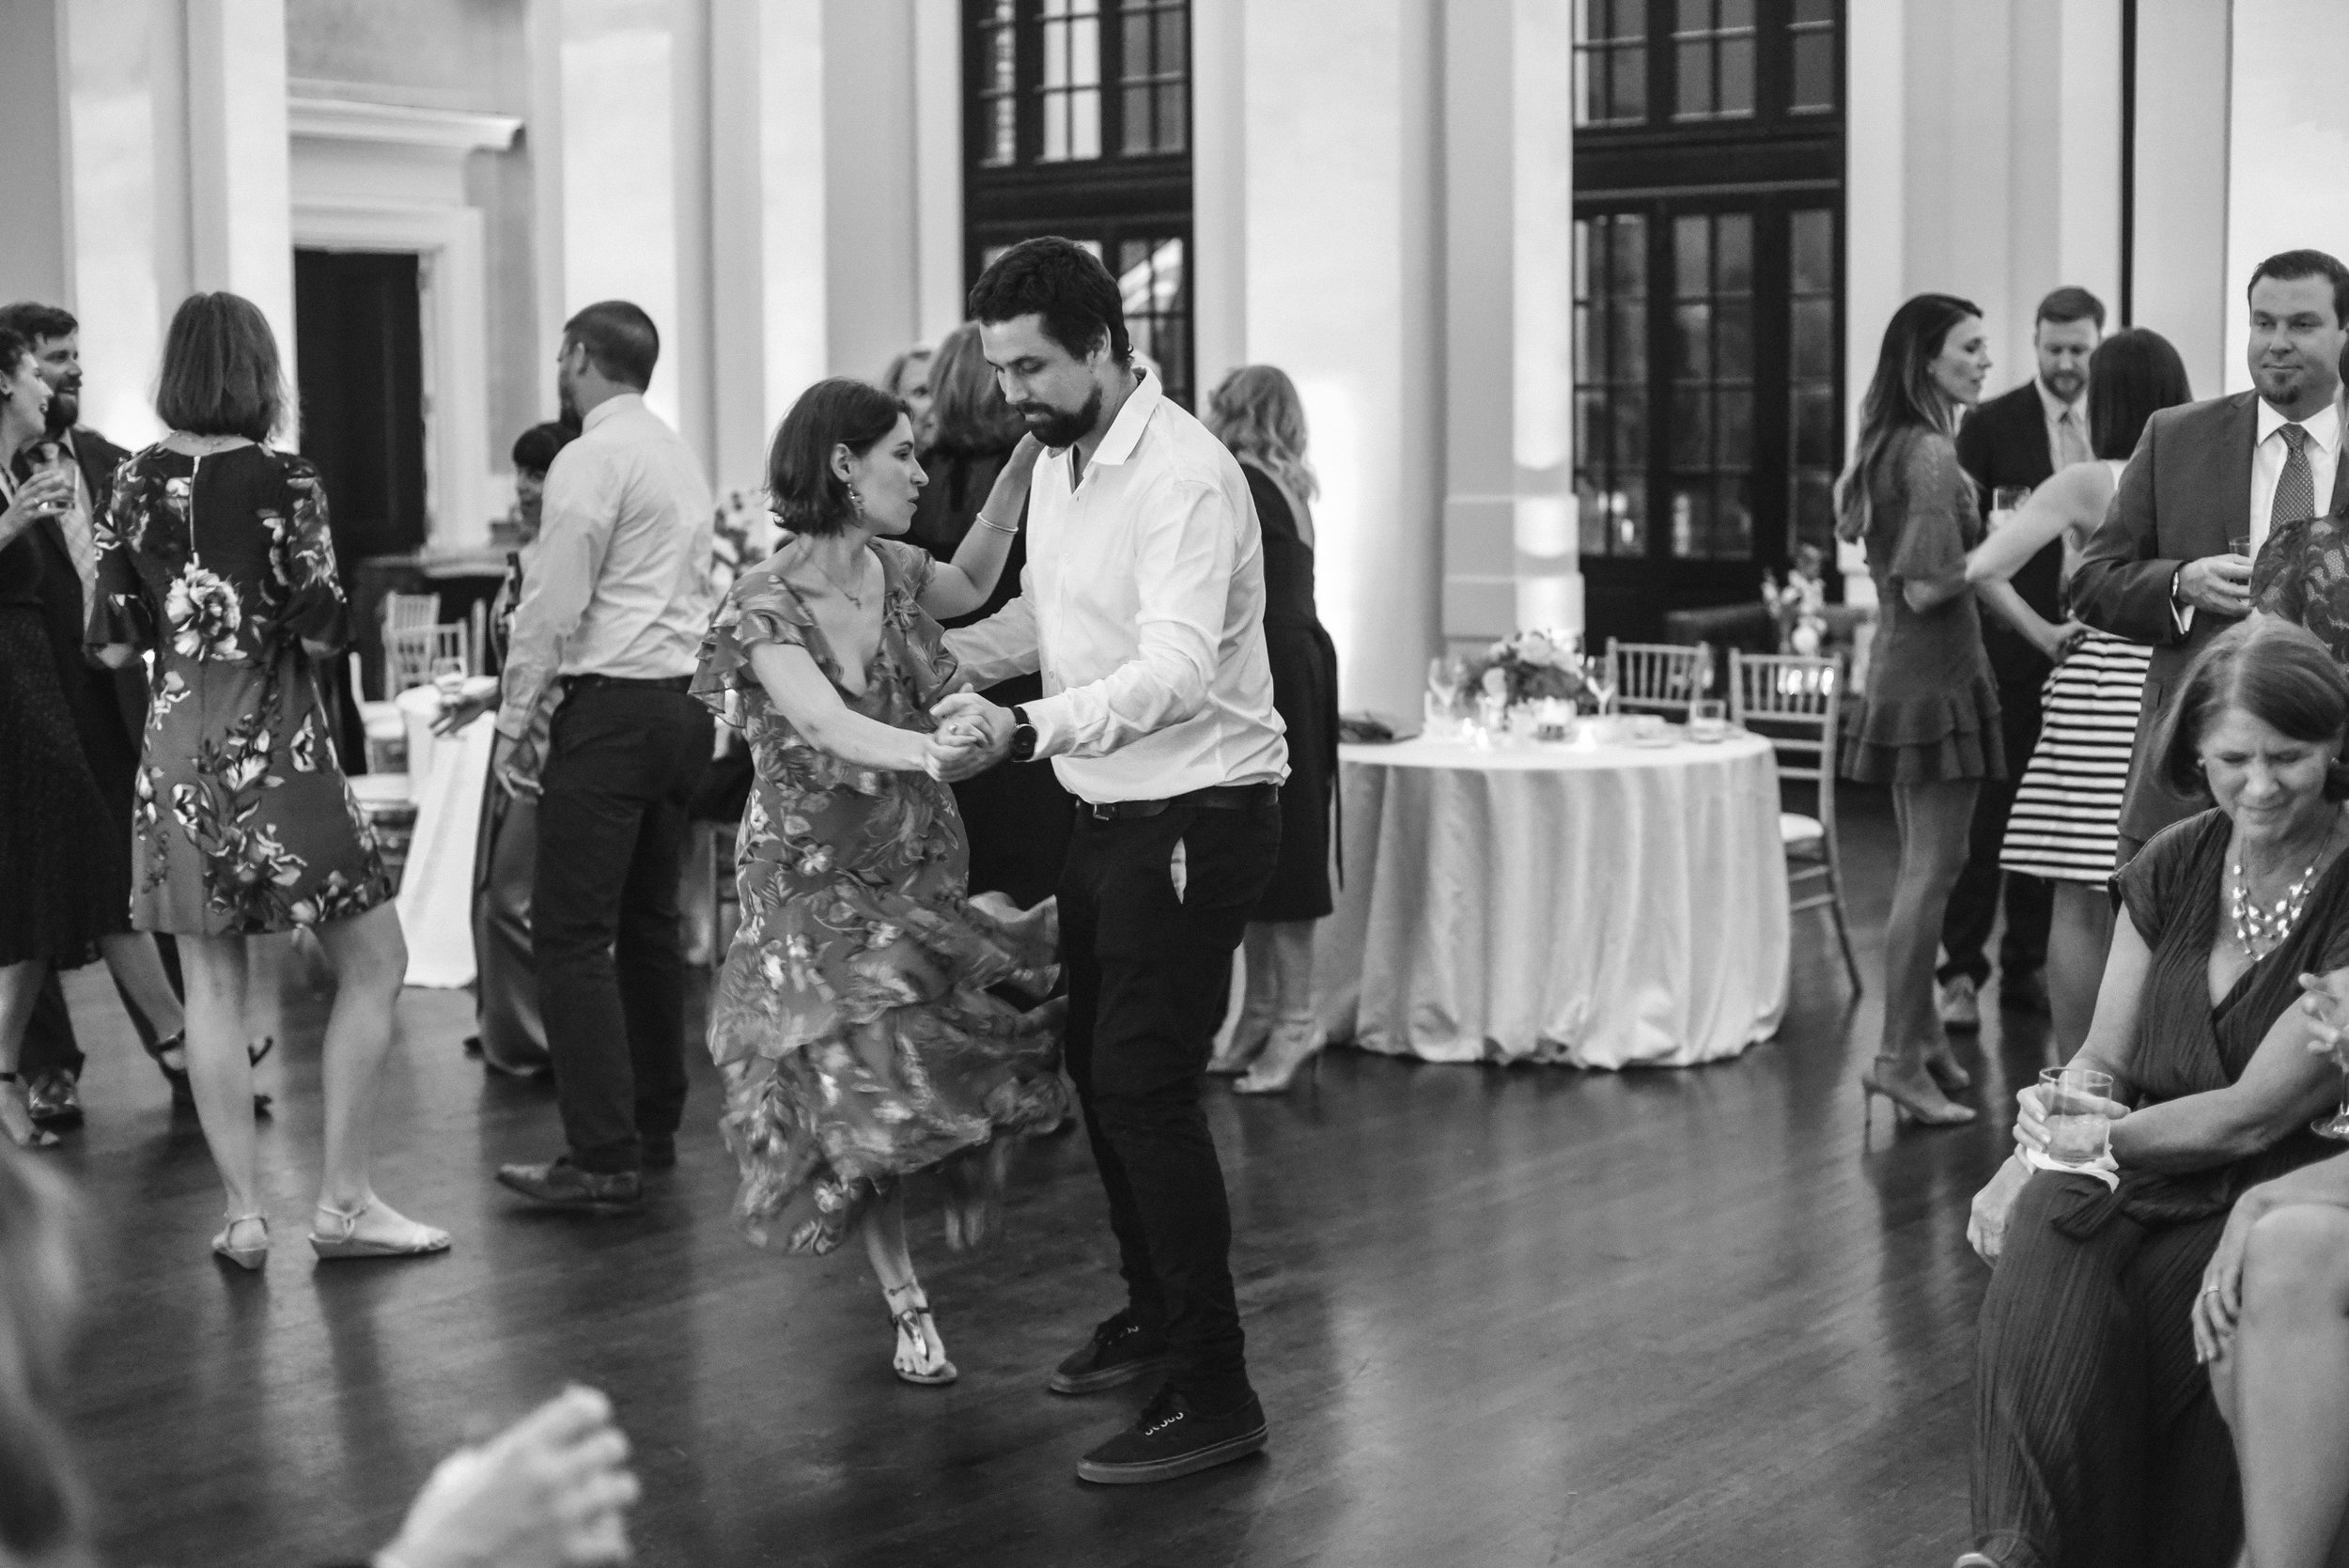 sagamore_pendry_wedding_reception-167.jpg